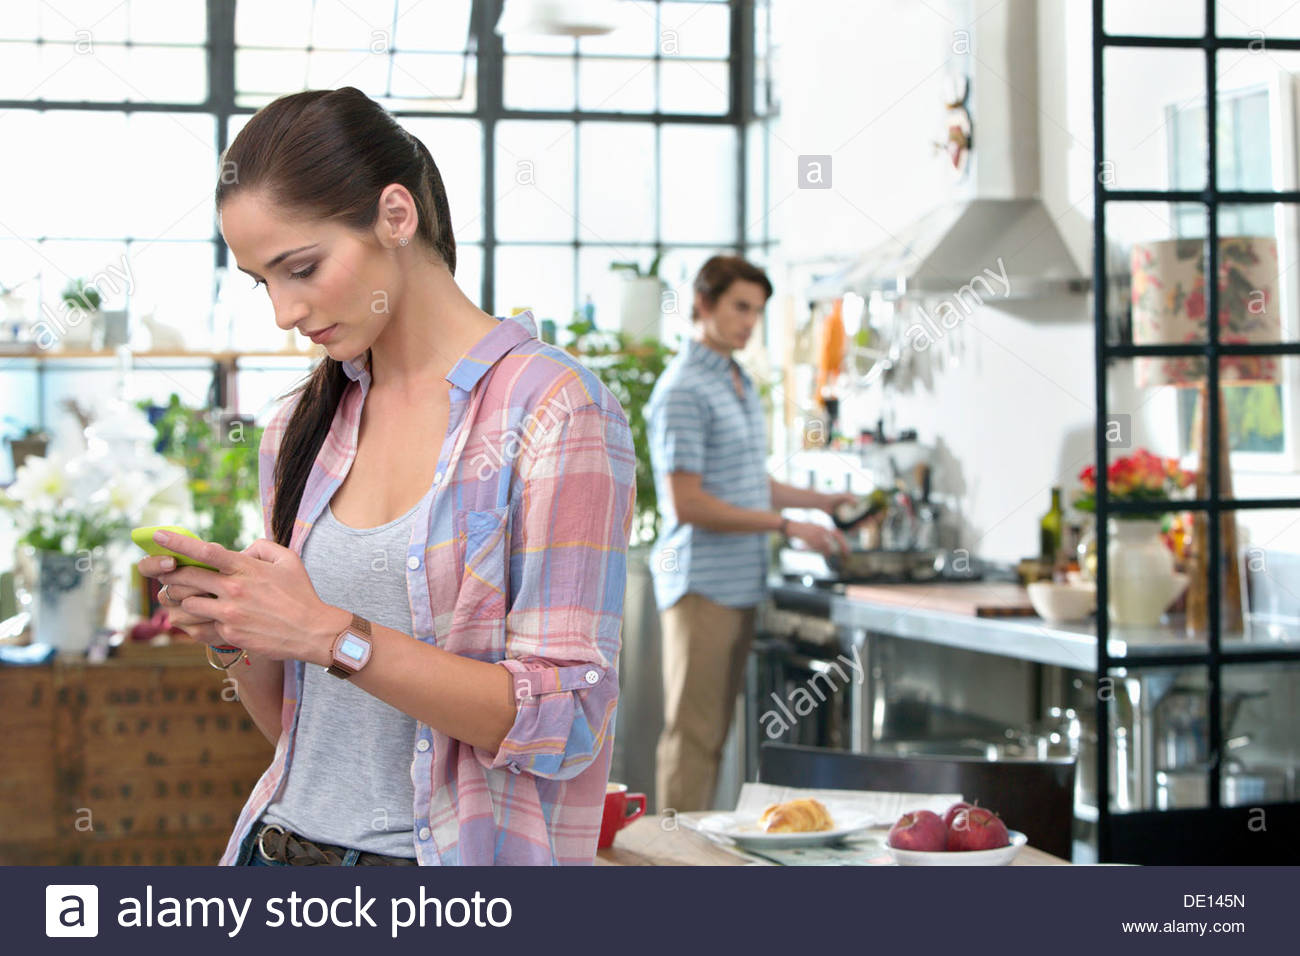 Woman text messaging with cell phone in kitchen - Stock Image